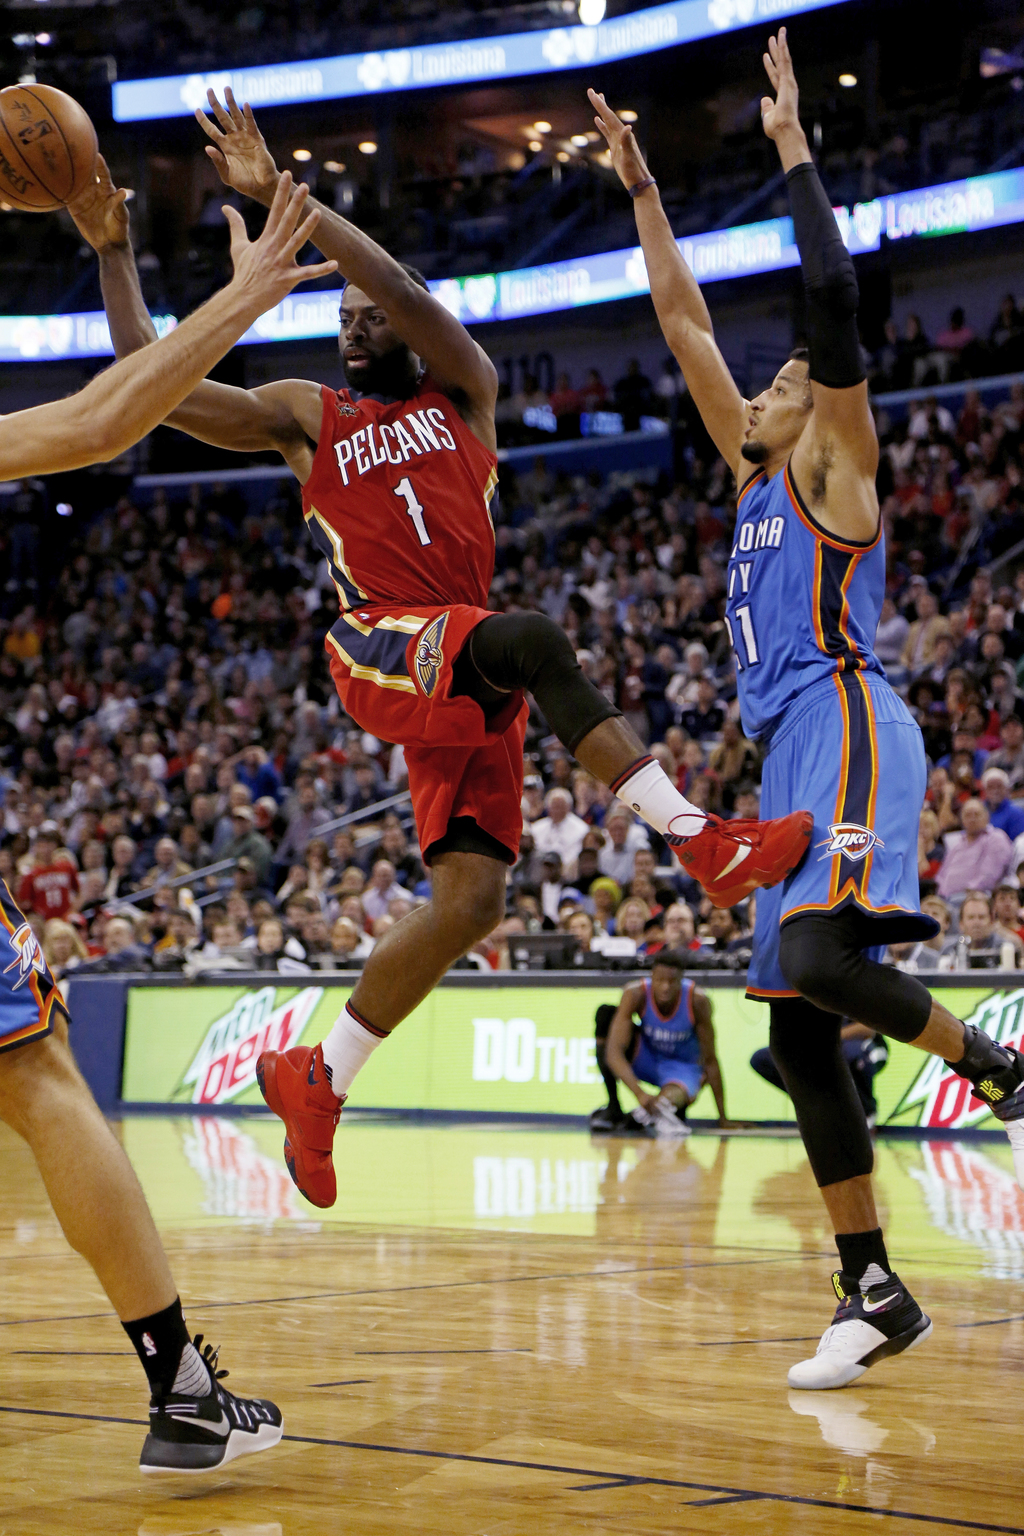 New Orleans Pelicans guard Tyreke Evans (1) passes the ball after being blocked at the basket by Oklahoma City Thunder forward Andre Ro...